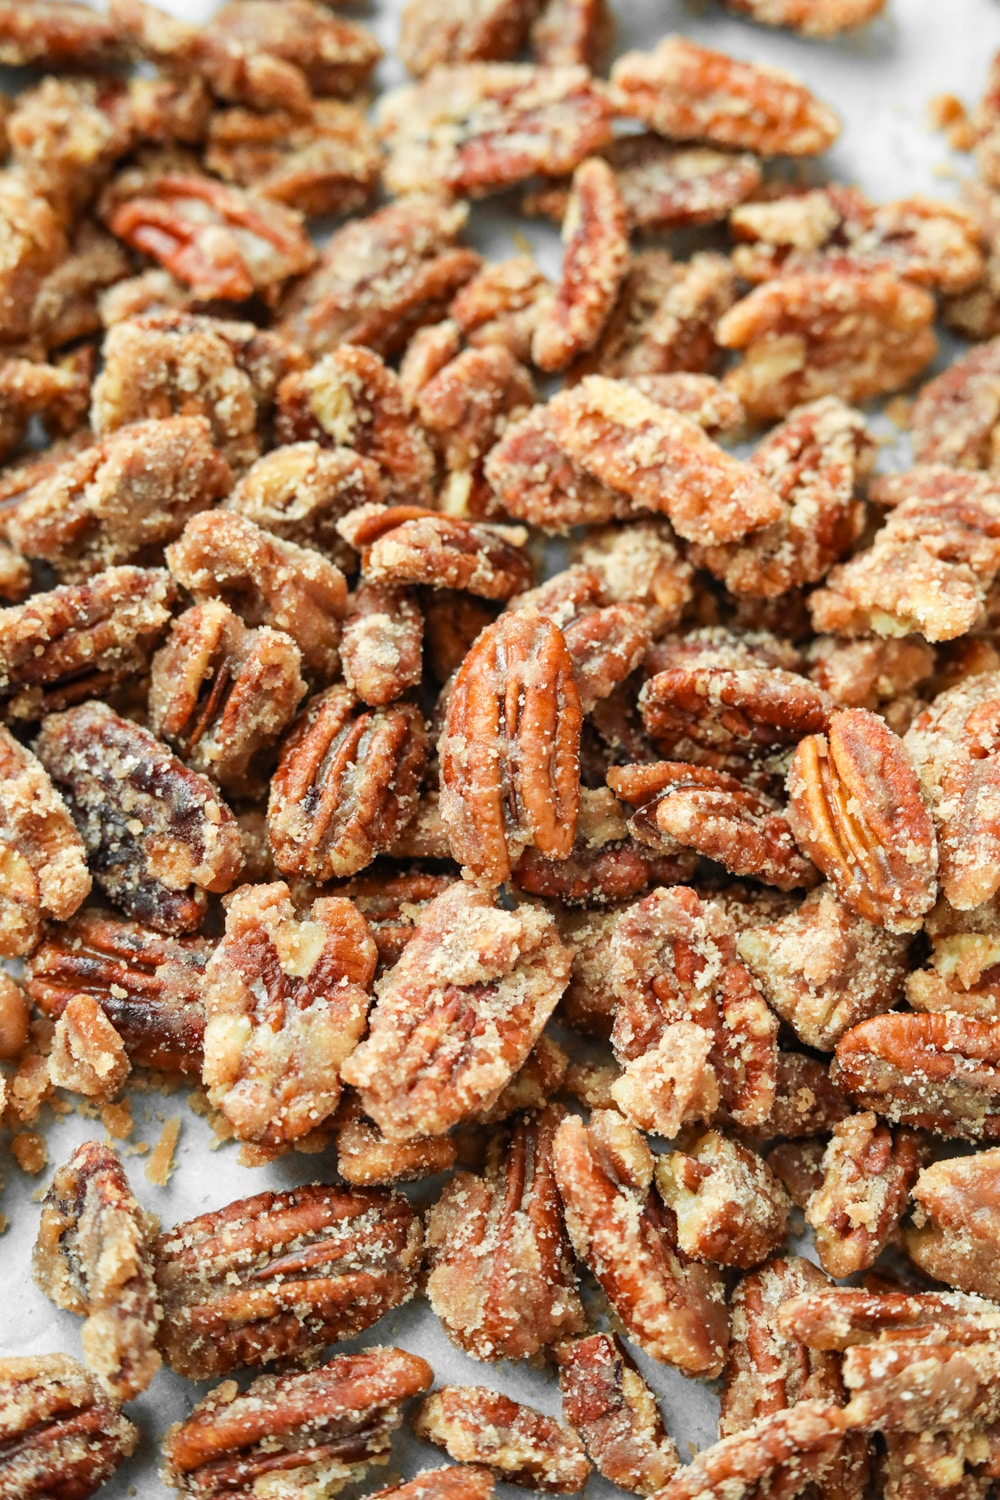 Candied pecans on a white sheet of parchment paper.